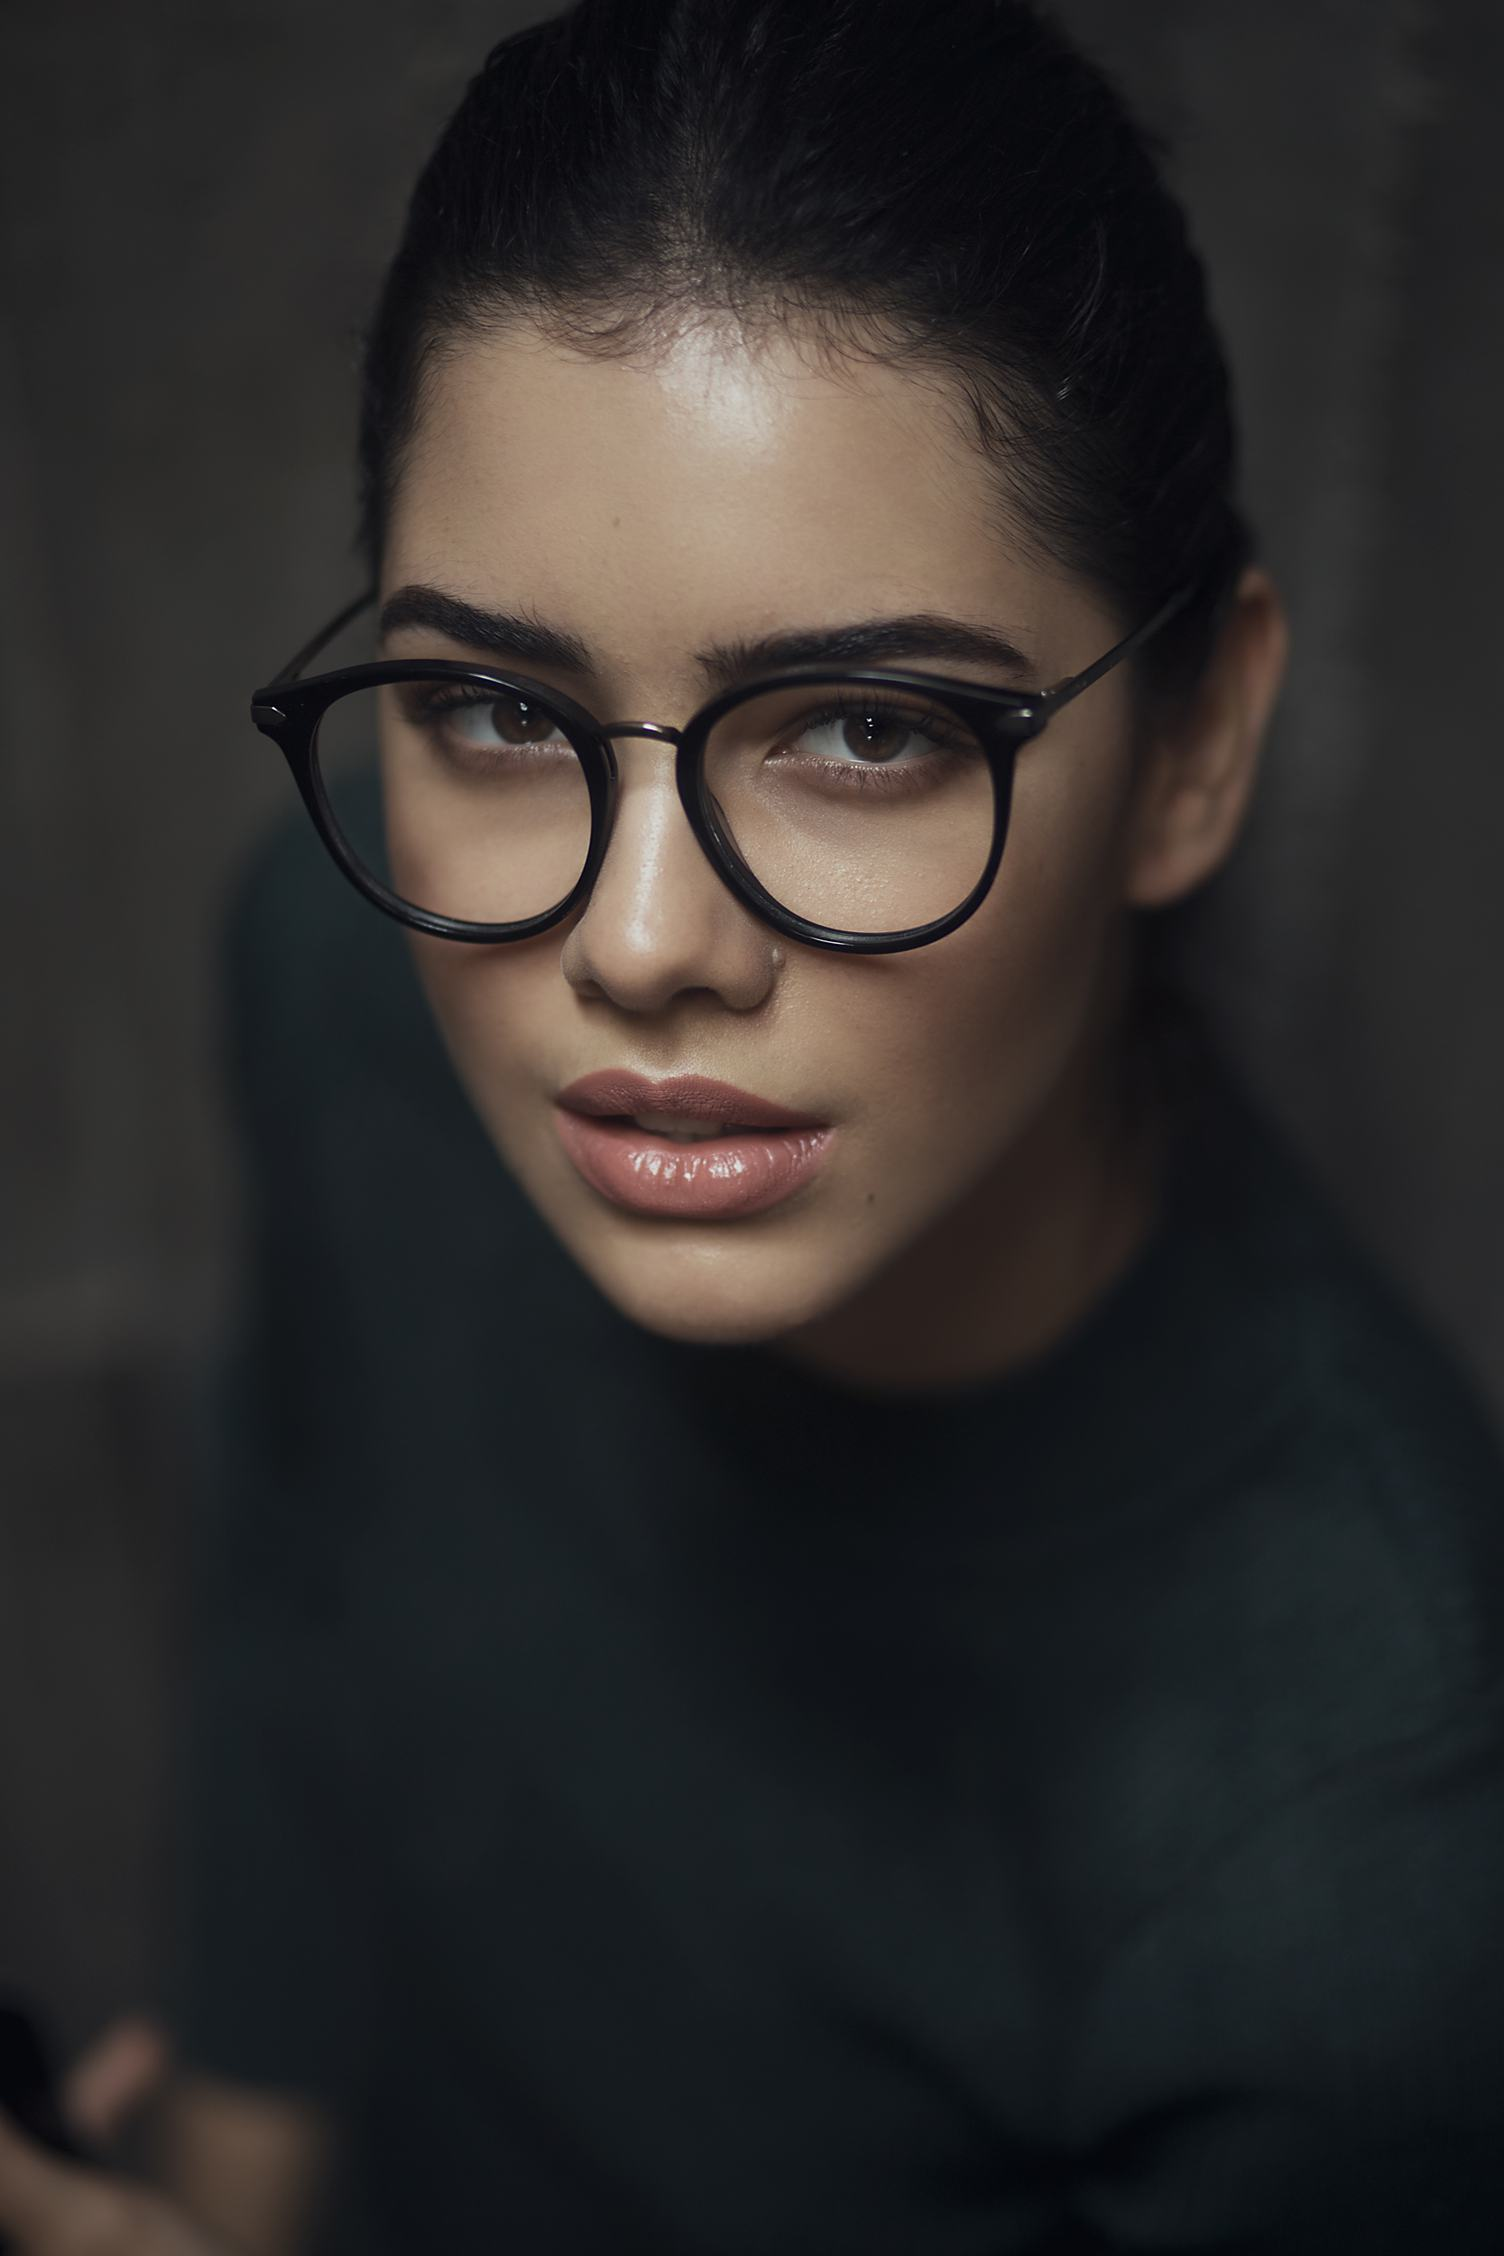 Portrait of Young Woman Wearing Retro Black Glasses